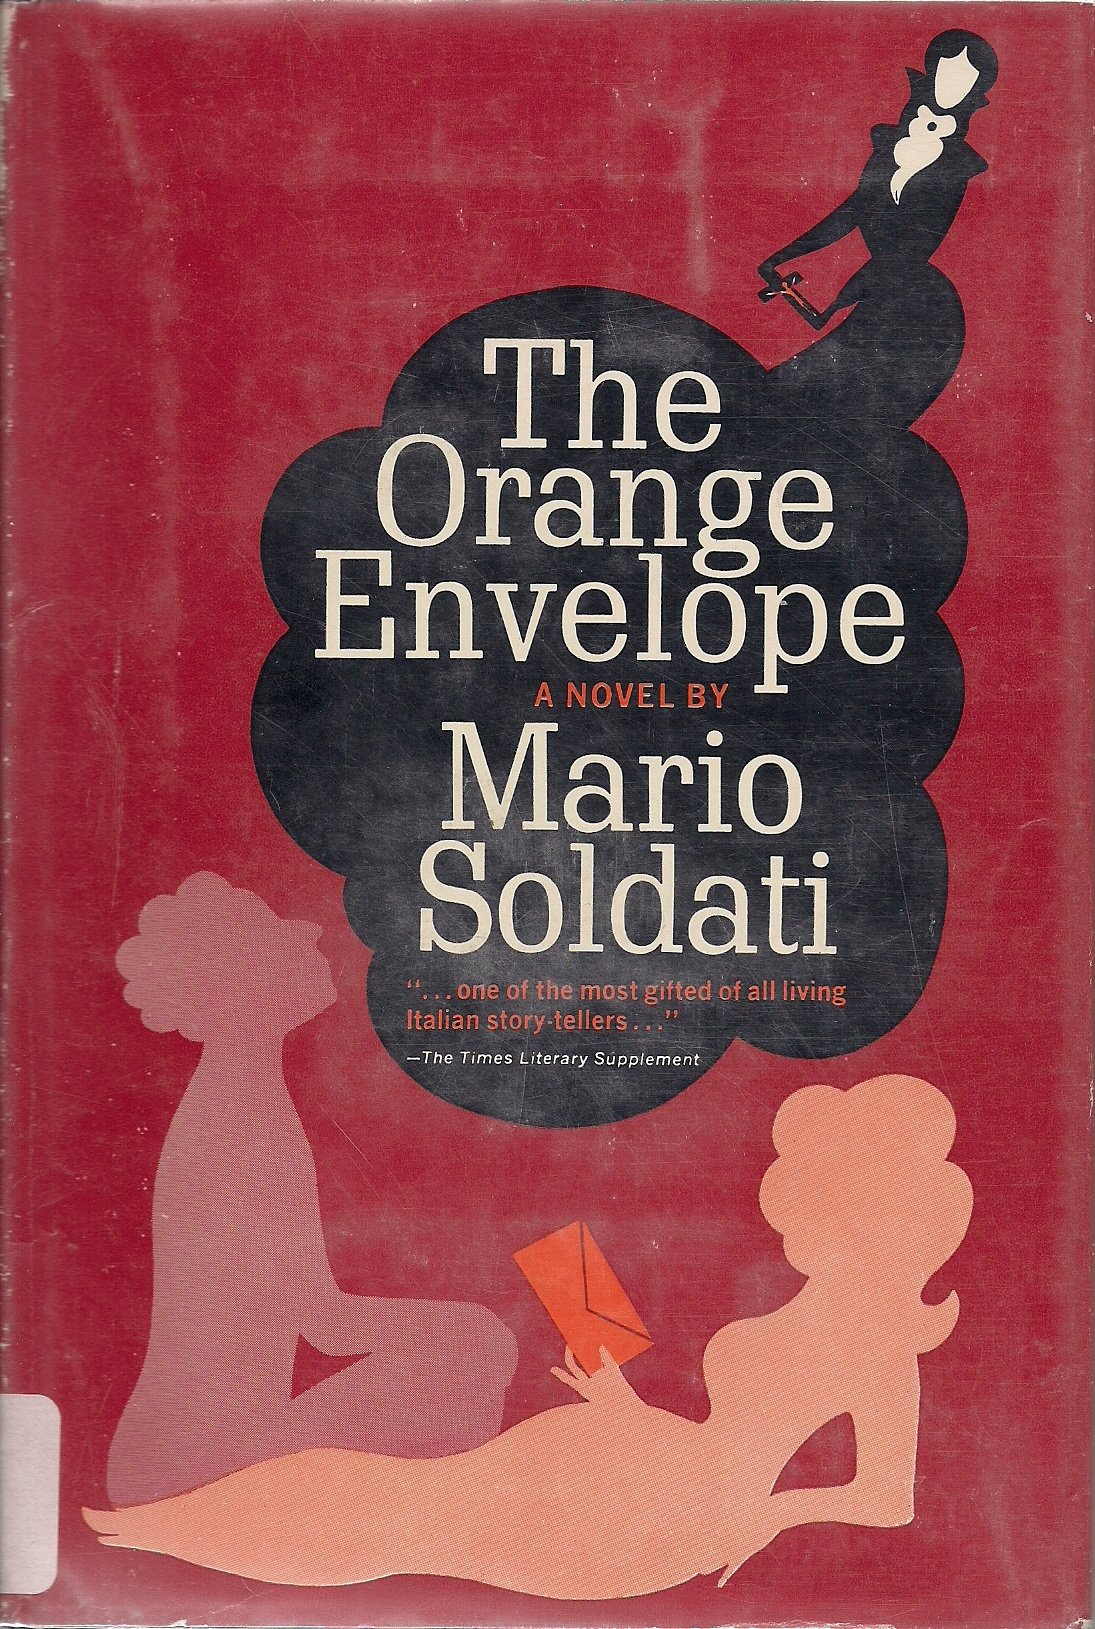 Slikovni rezultat za Mario Soldati, The Orange Envelope